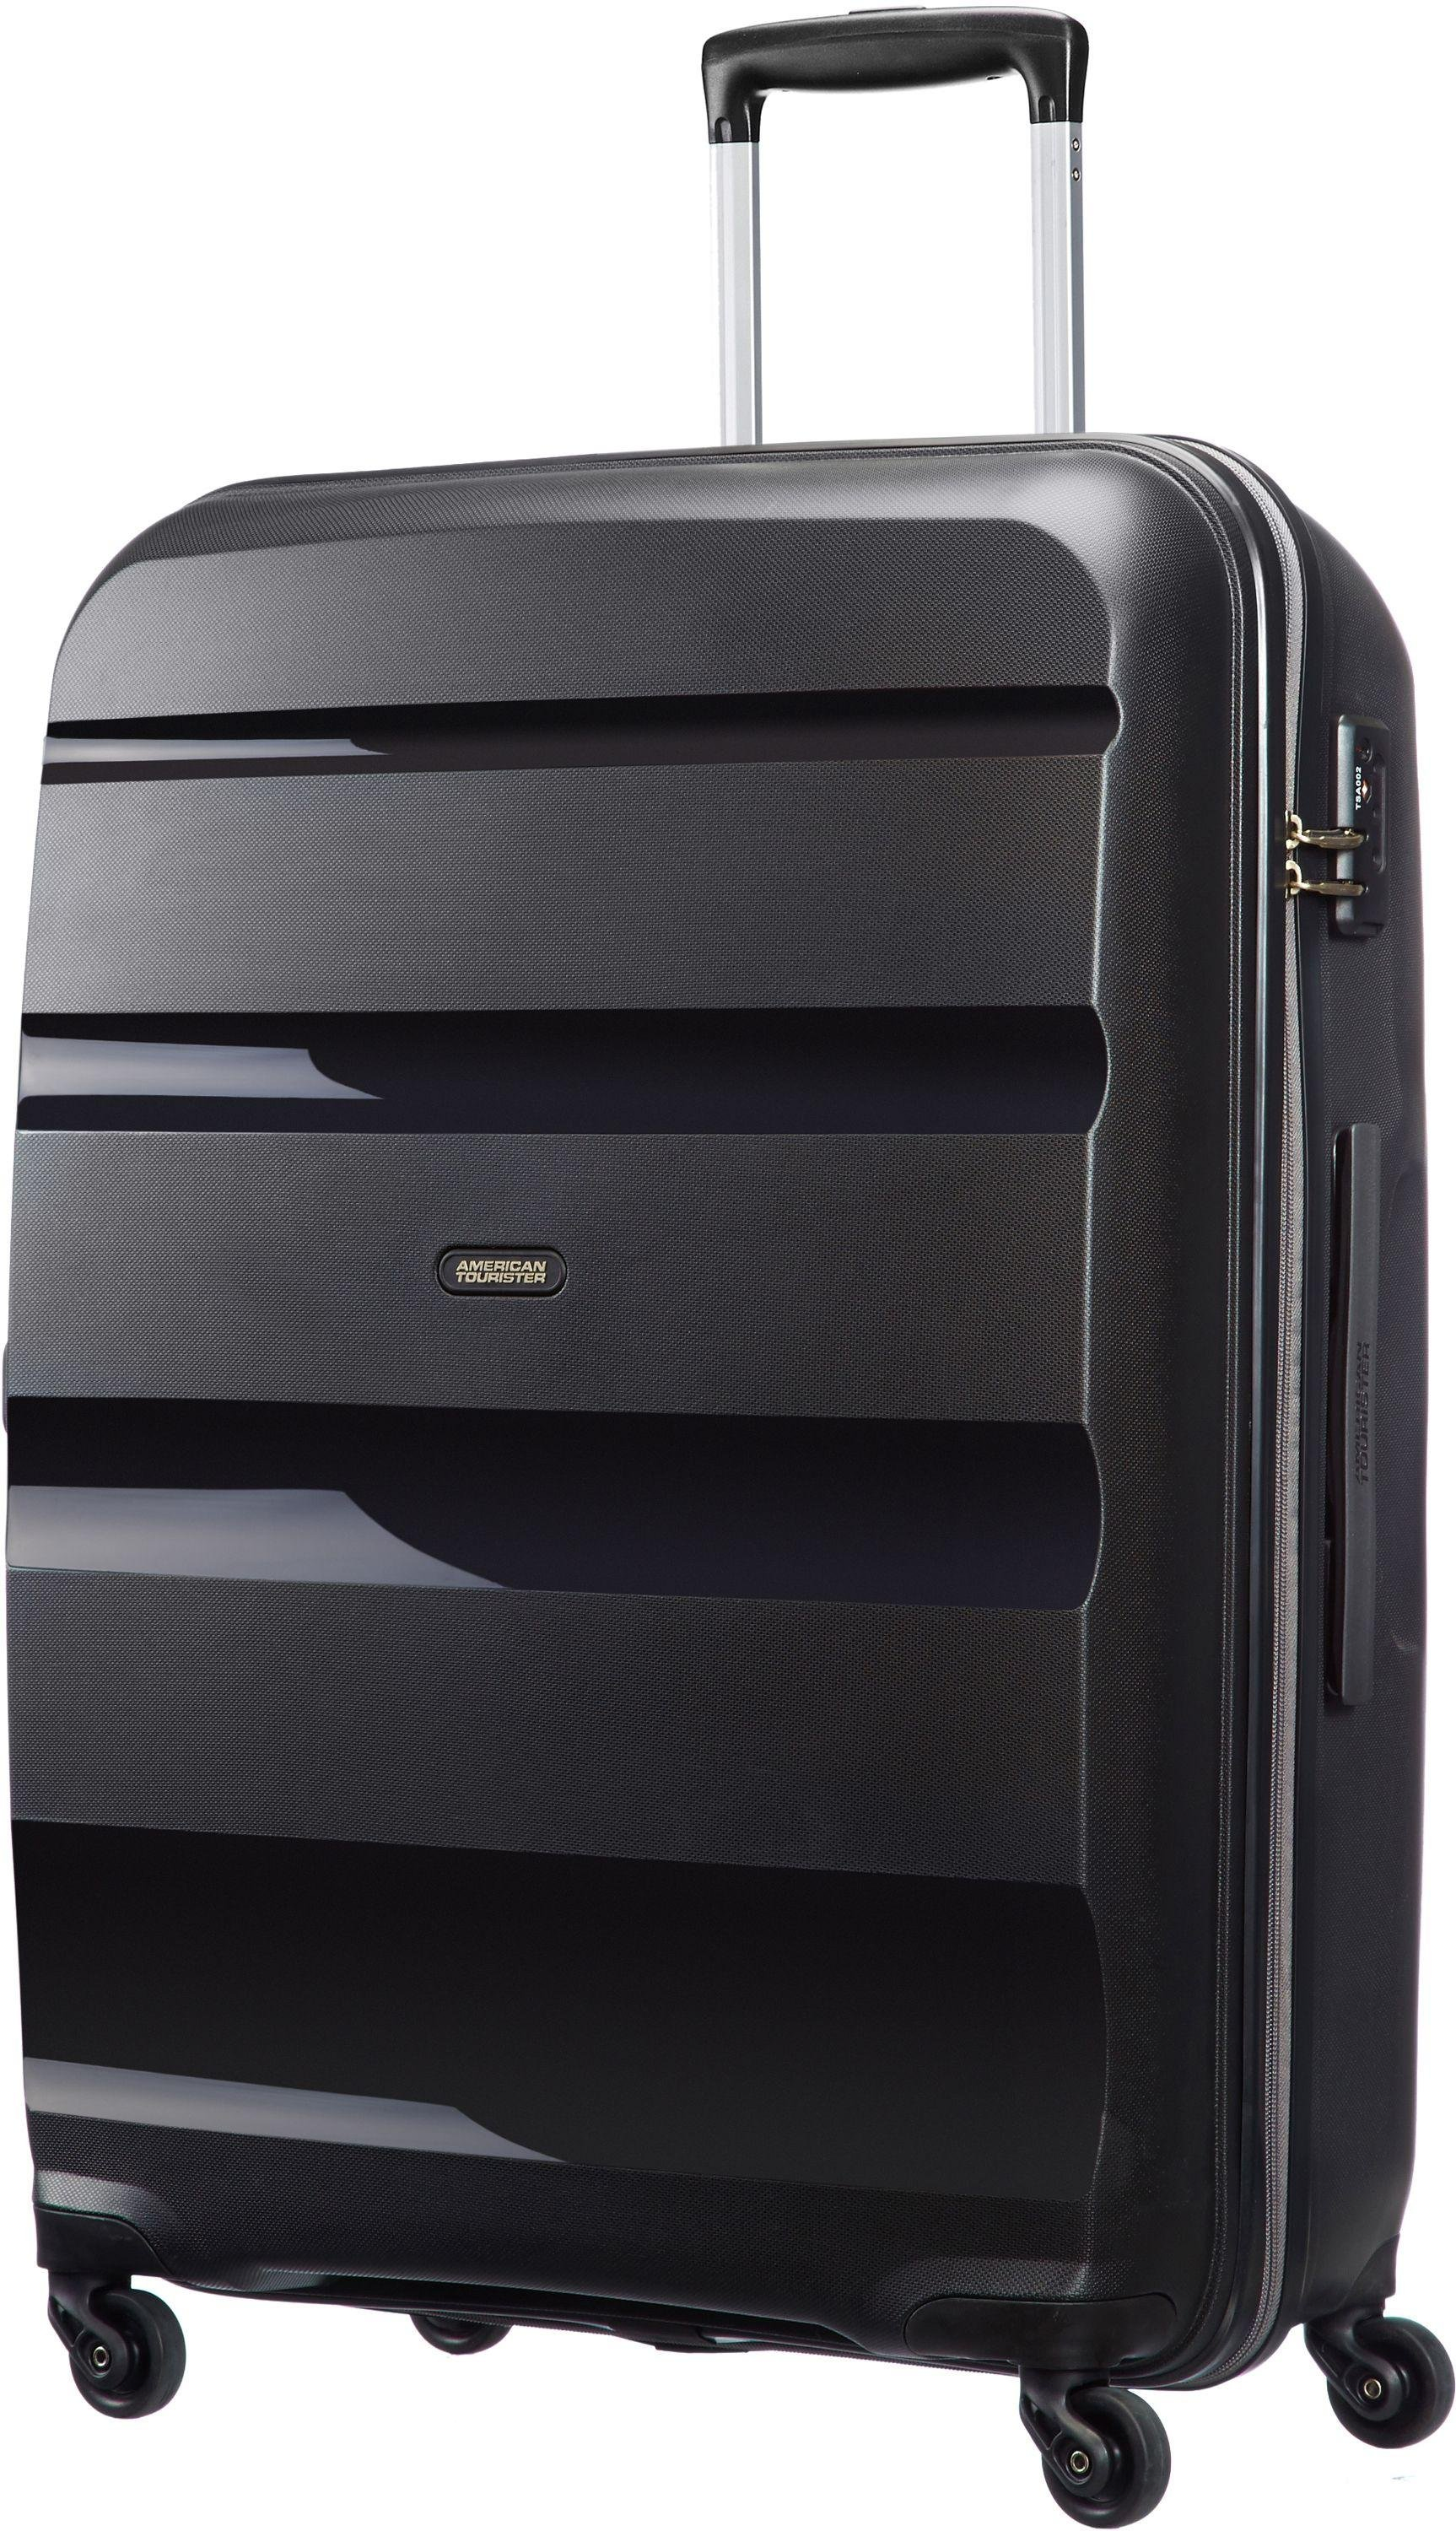 Image of American Tourister - Bon Air Spinner Large Suitcase - Black